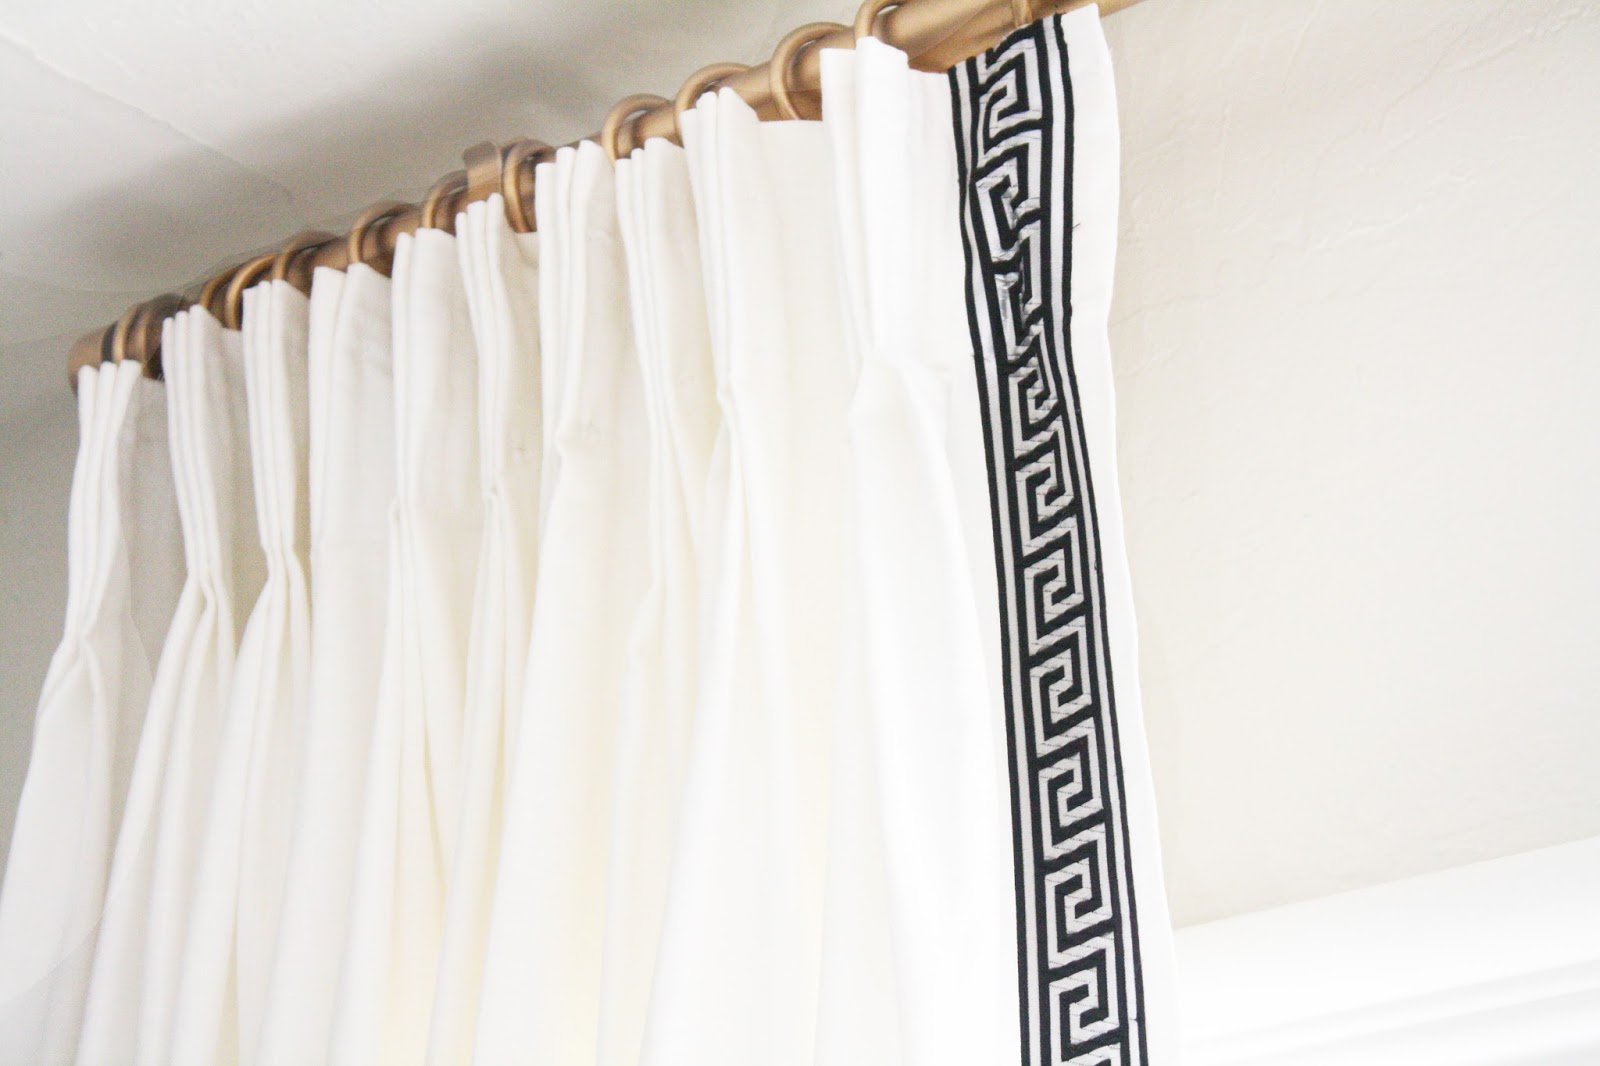 I Used Drapery Pins To Hang The Curtains One More Cheap Trick That Did Rings And Rod Were From Ikea Spray Painted Gold